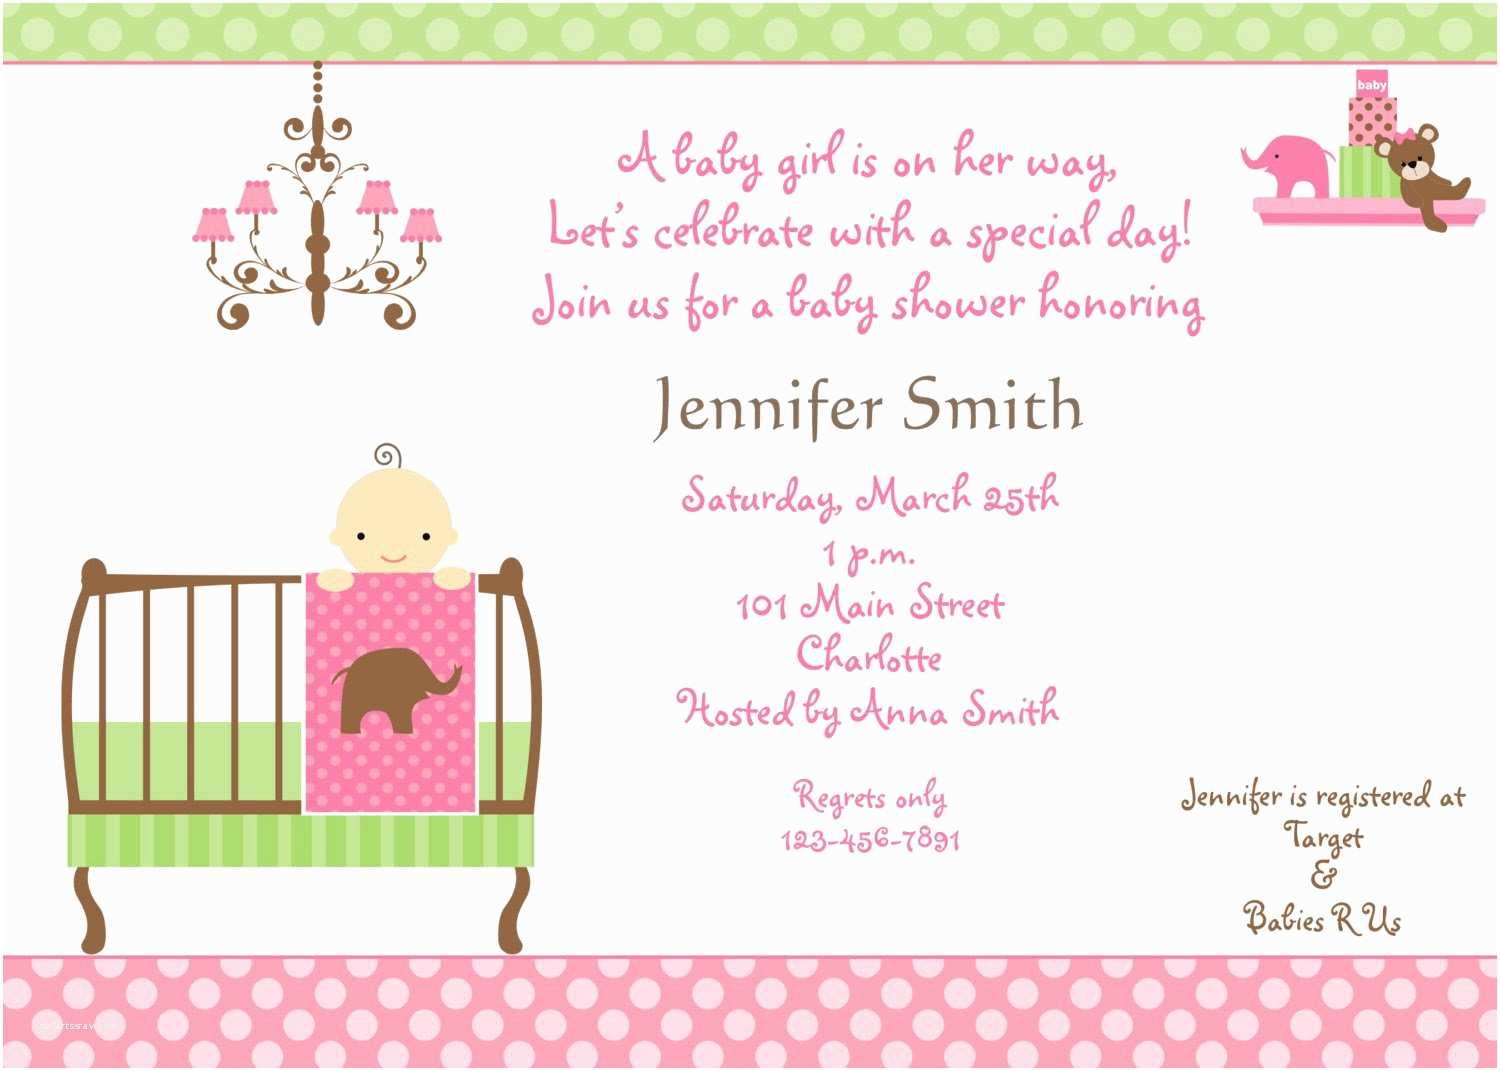 Baby Shower Invitations Girl Baby Shower Invitations for Girls Baby Shower